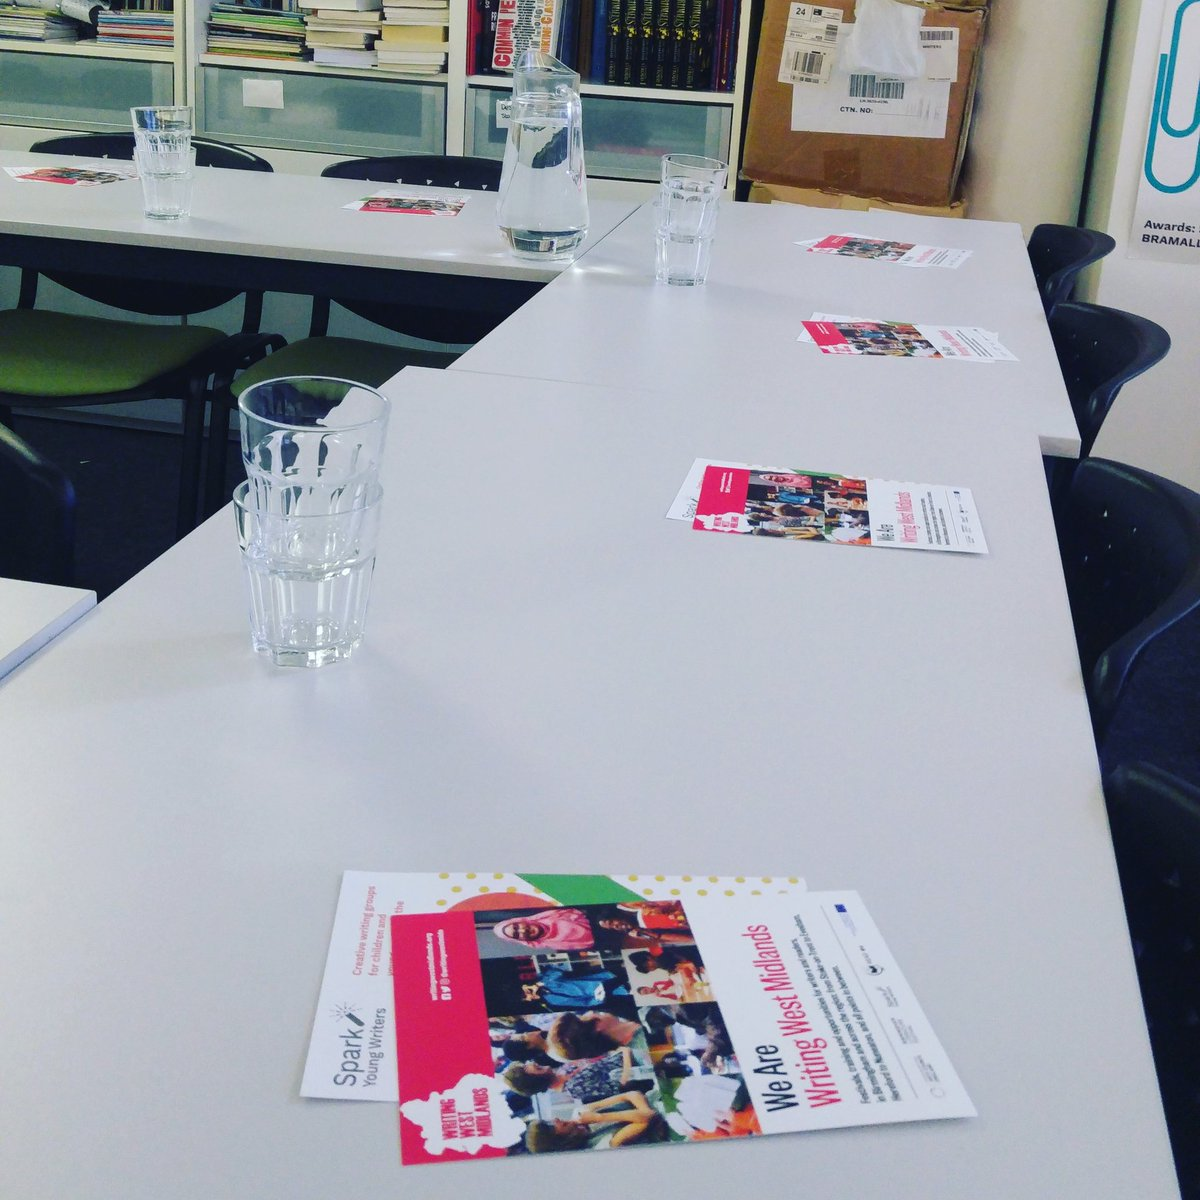 Writingwestmidlands On Twitter We Re All Set Up For The First Writing Short Course Of 2020 Pitching Your Work One Day Workshop With Liv Chapman 13 Writers Due In An Hour To Learn And